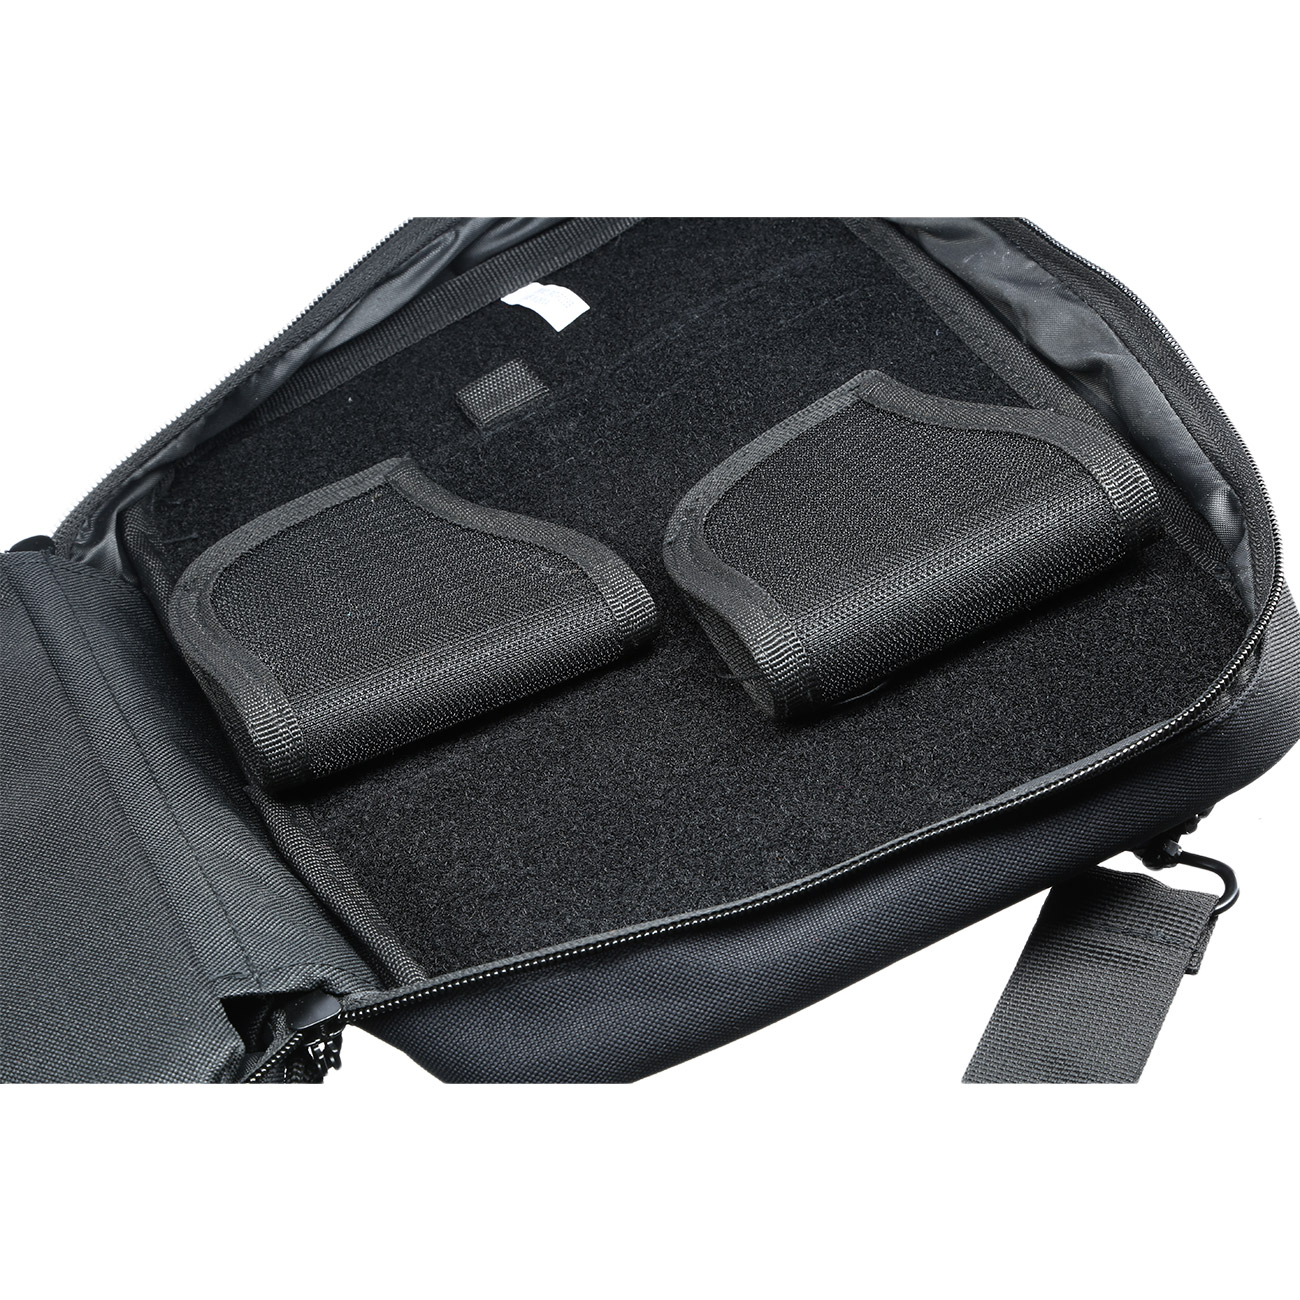 UTG Competition Shooter Double Pistol Case / Pistolentasche schwarz 5